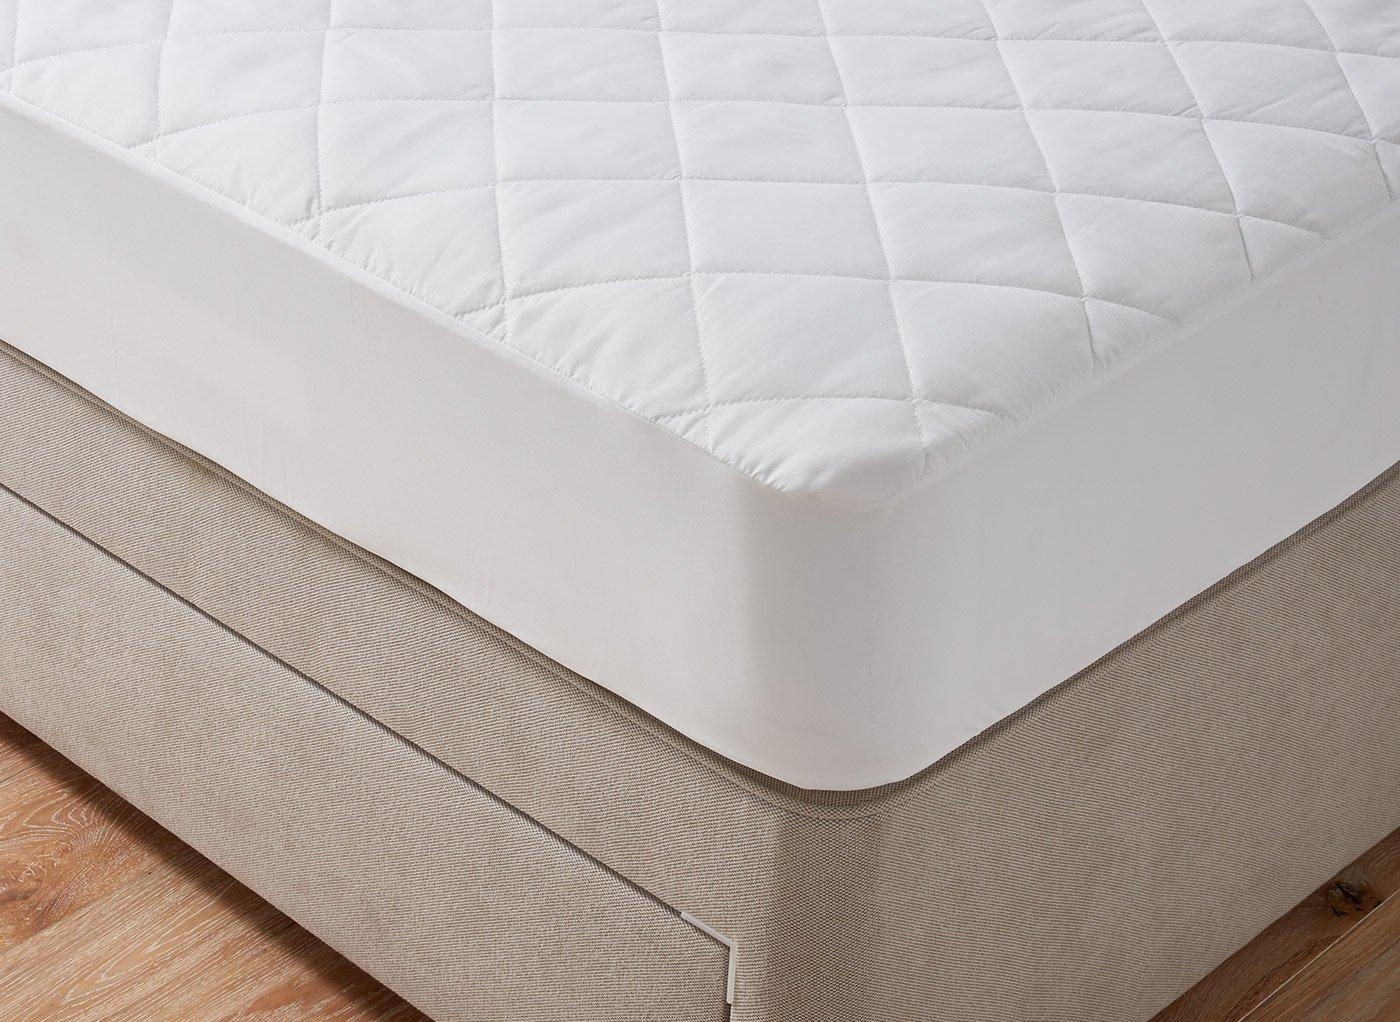 Doze Super Soft Mattress Protector 5'0 King